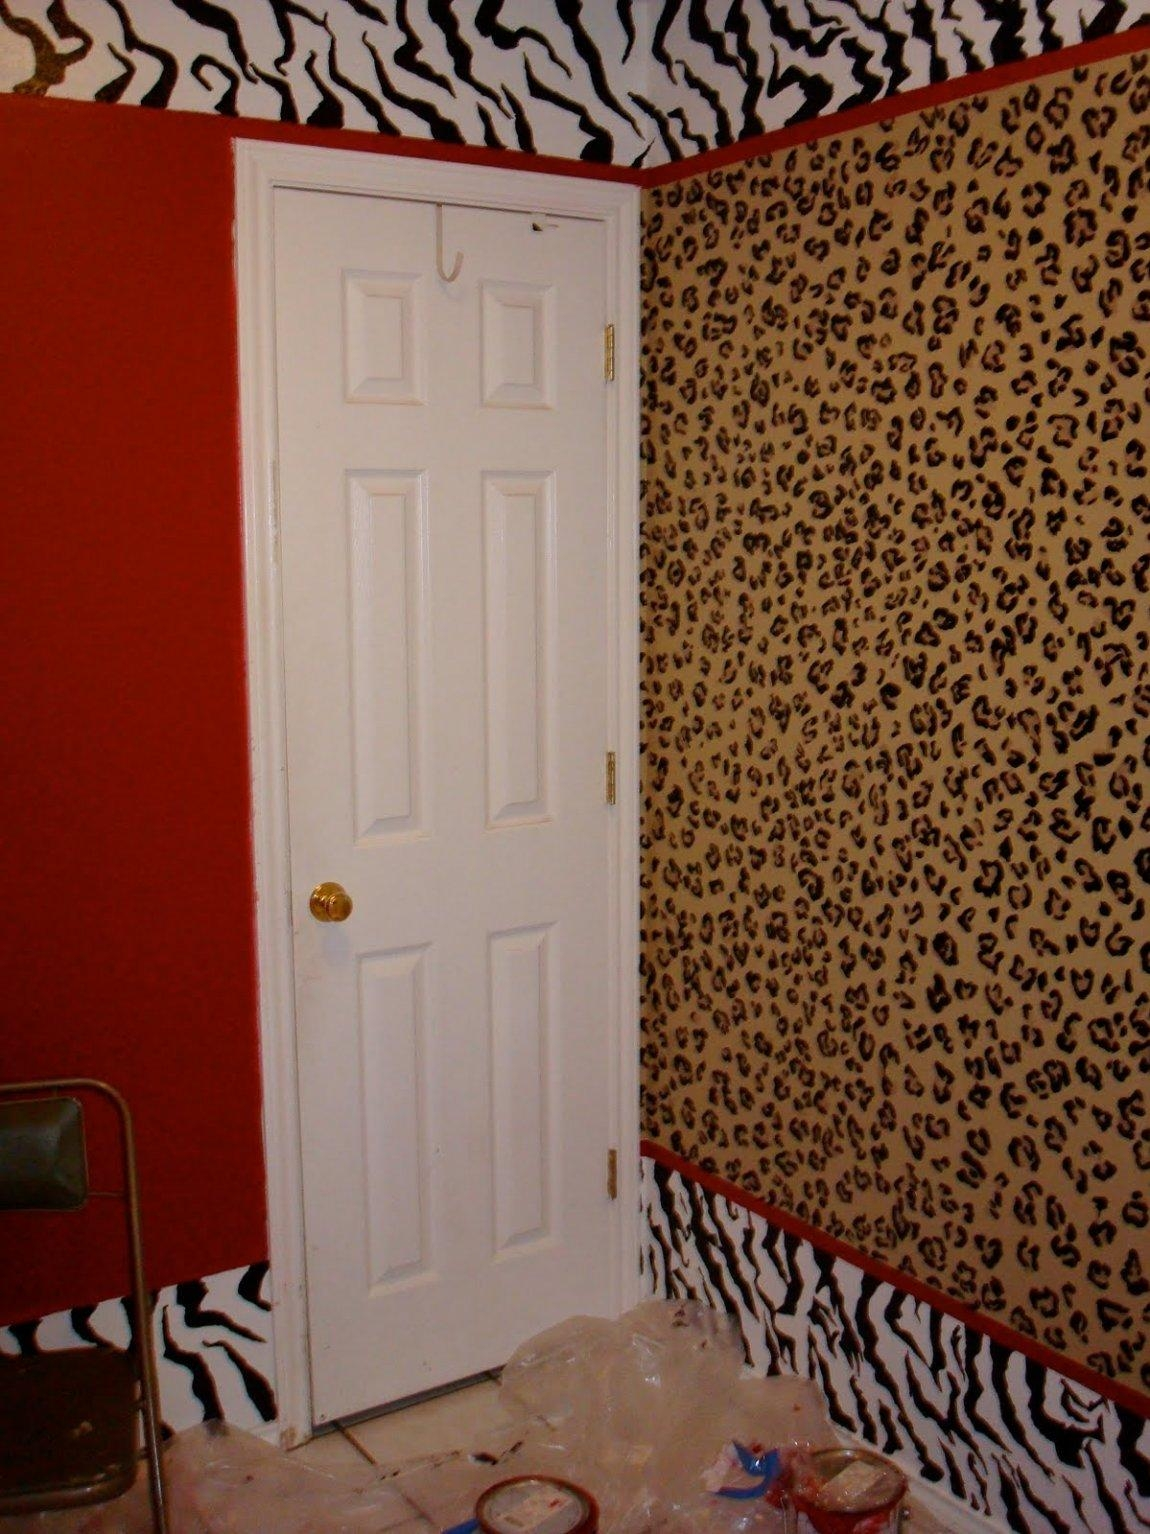 2019 Latest Leopard Print Wall Art Wall Art Ideas